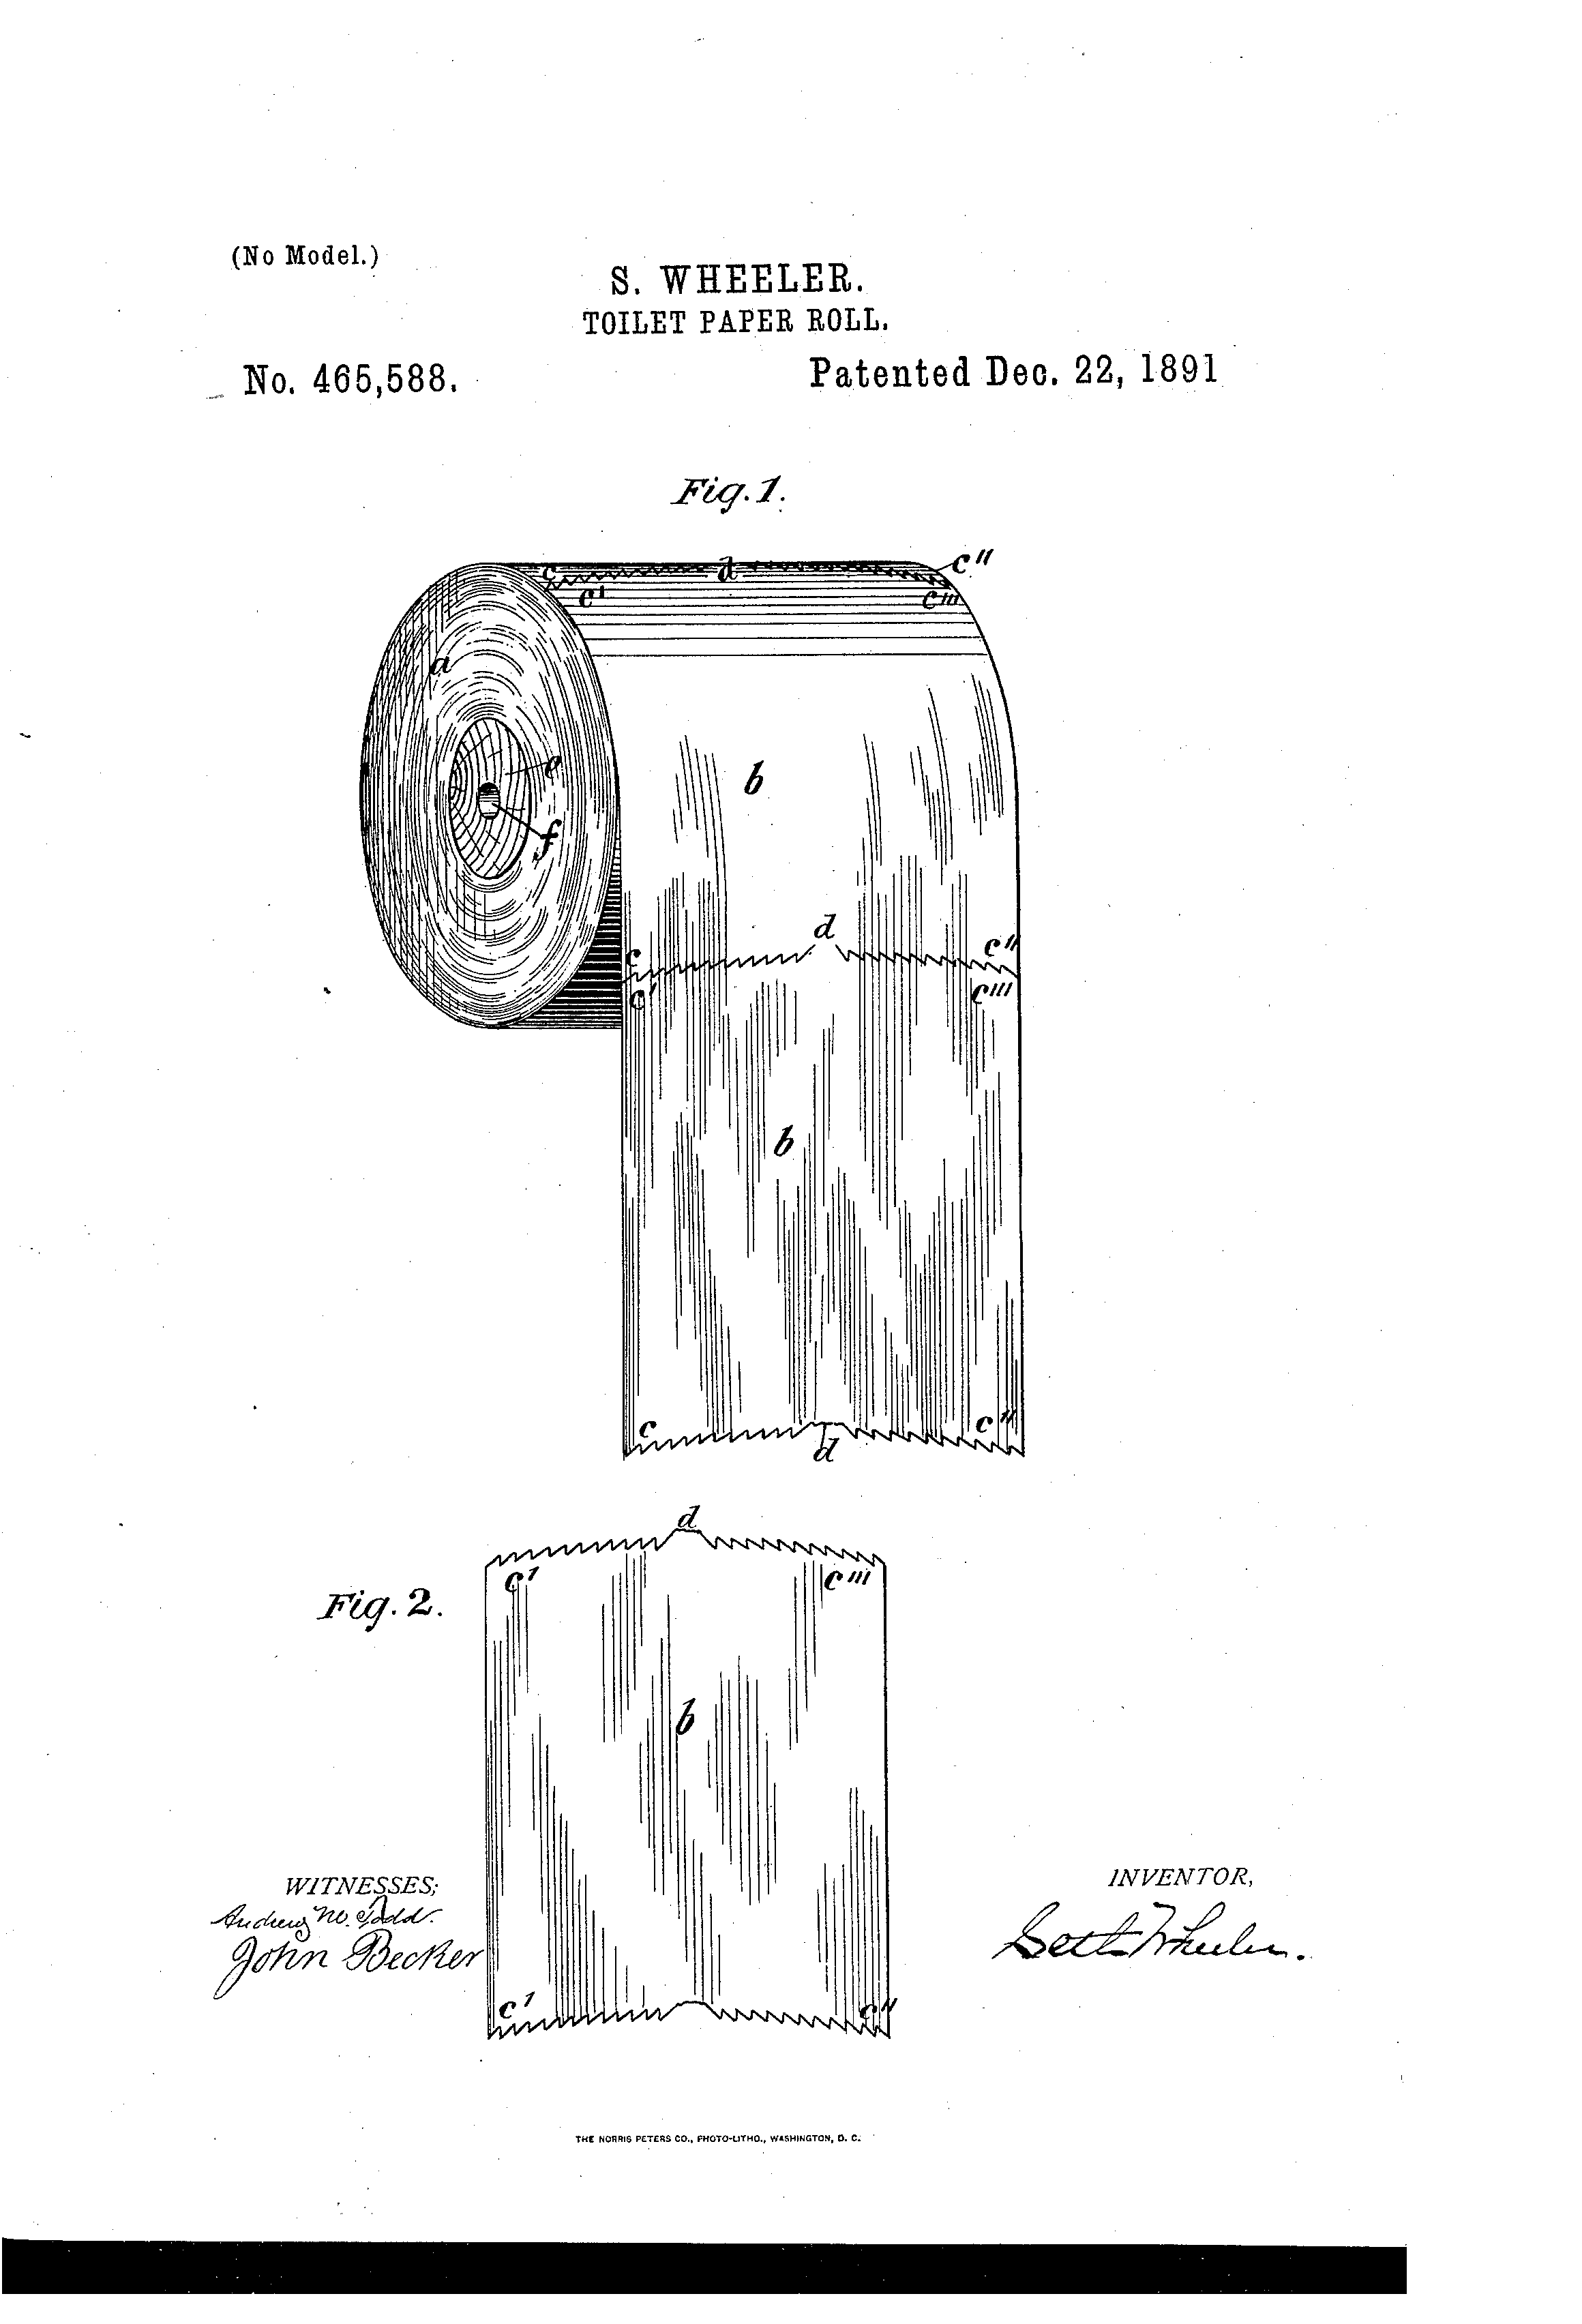 File Toilet paper roll patent US465588 0 png. File Toilet paper roll patent US465588 0 png   Wikimedia Commons